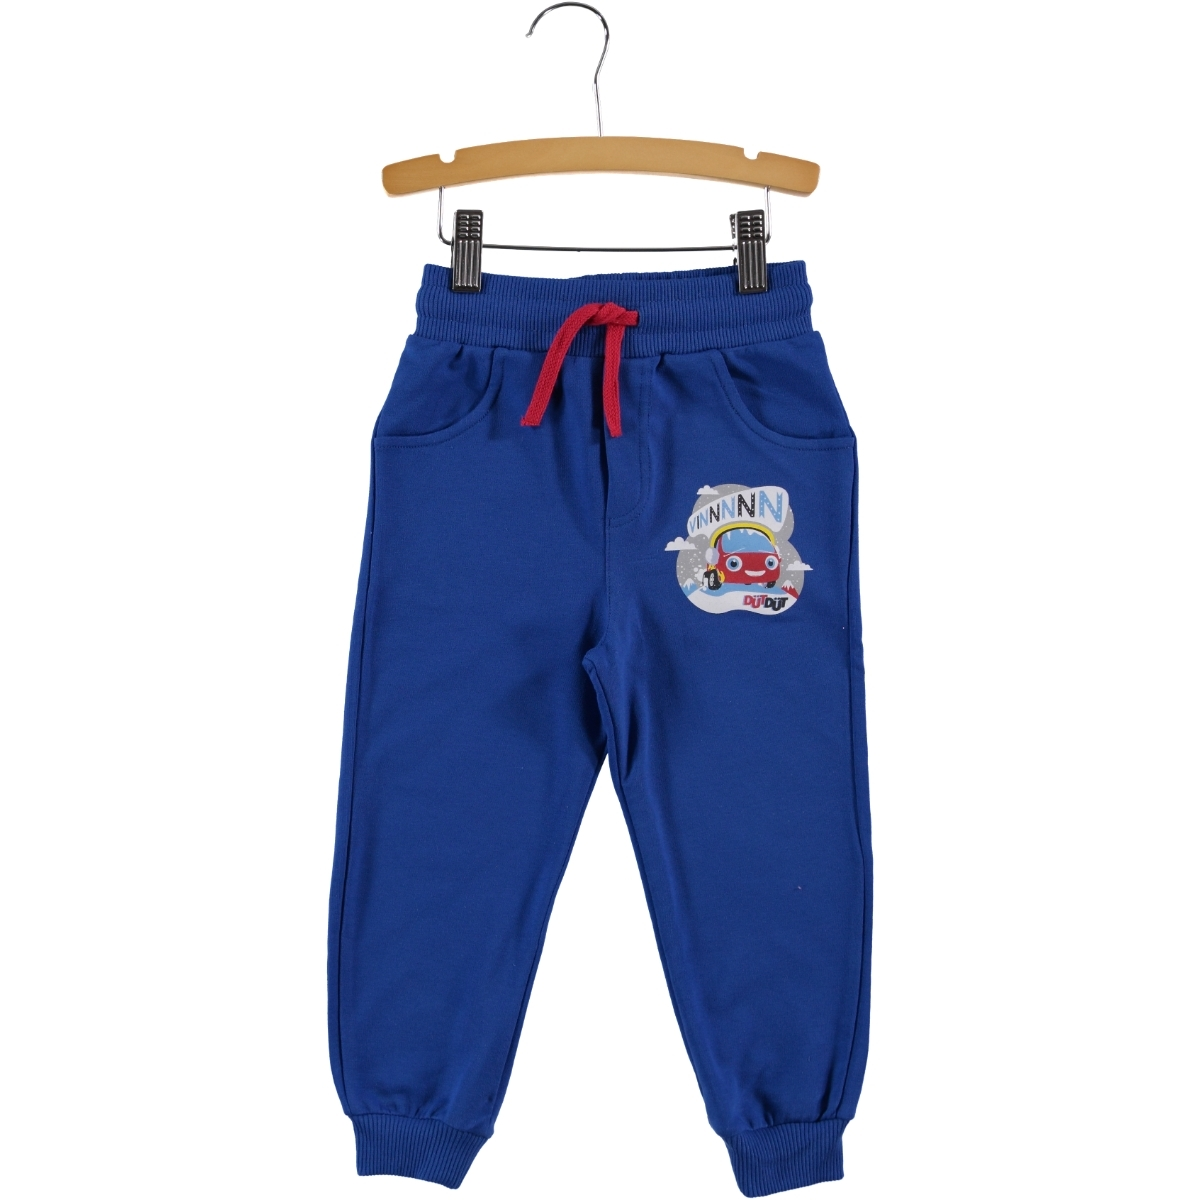 Cvl Saks Mulberry Mulberry Blue Sweatpants Boy 2-5 Years Old